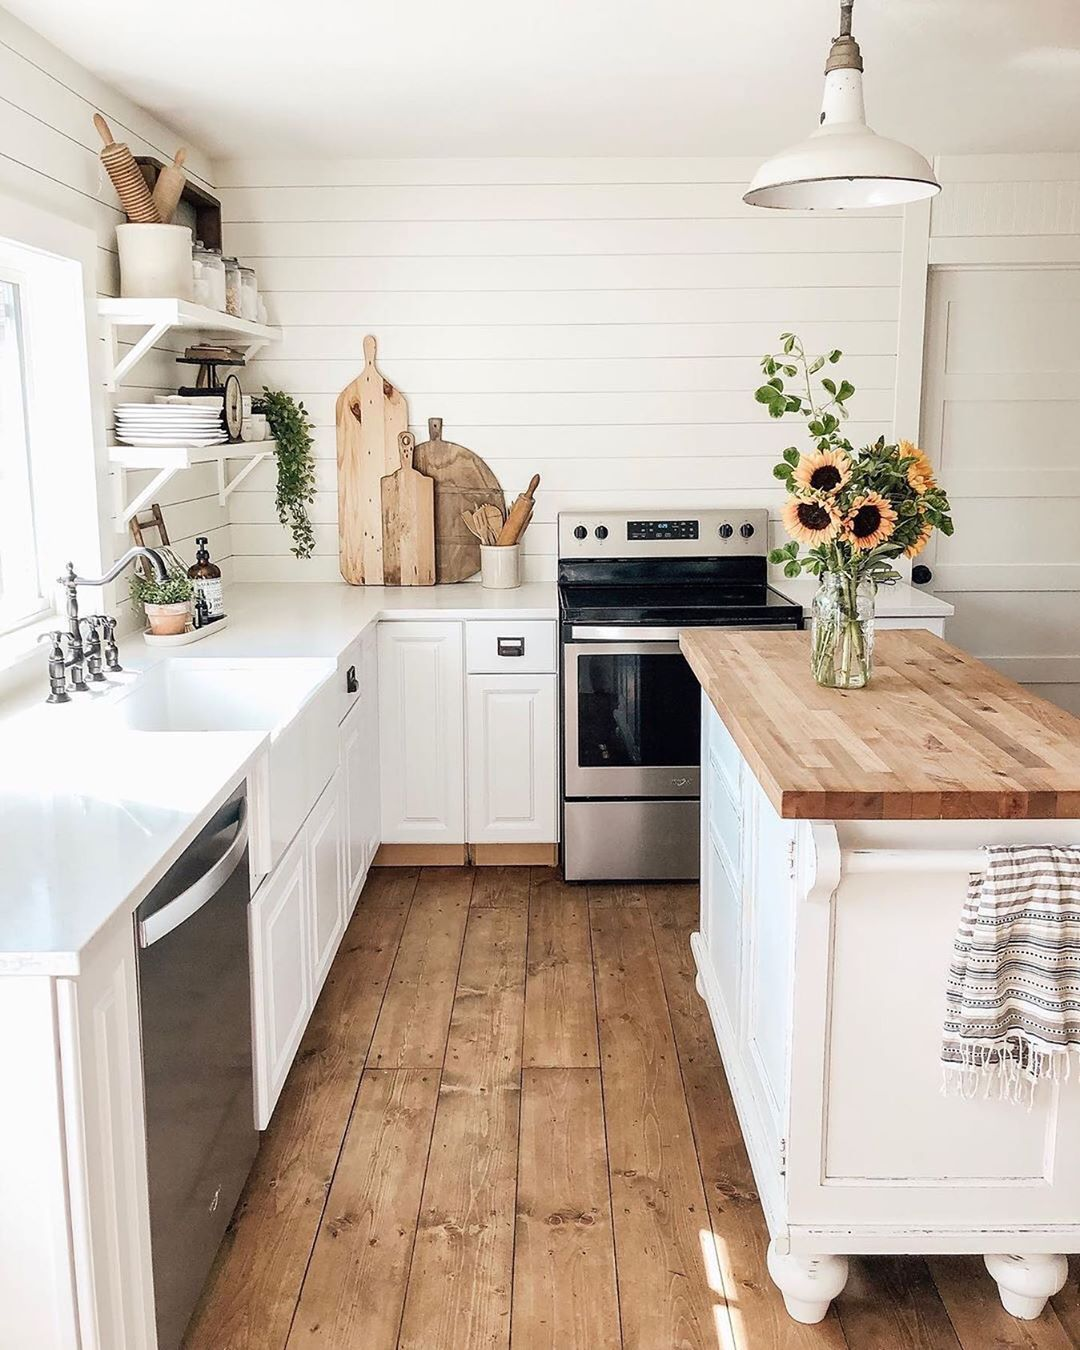 Farmhouse Fanatics On Instagram Isn T This Kitchen Just Beautiful I Am So Obsessed With The Floors What Design Farmhouse Kitchen Kitchen Kitchen Decor